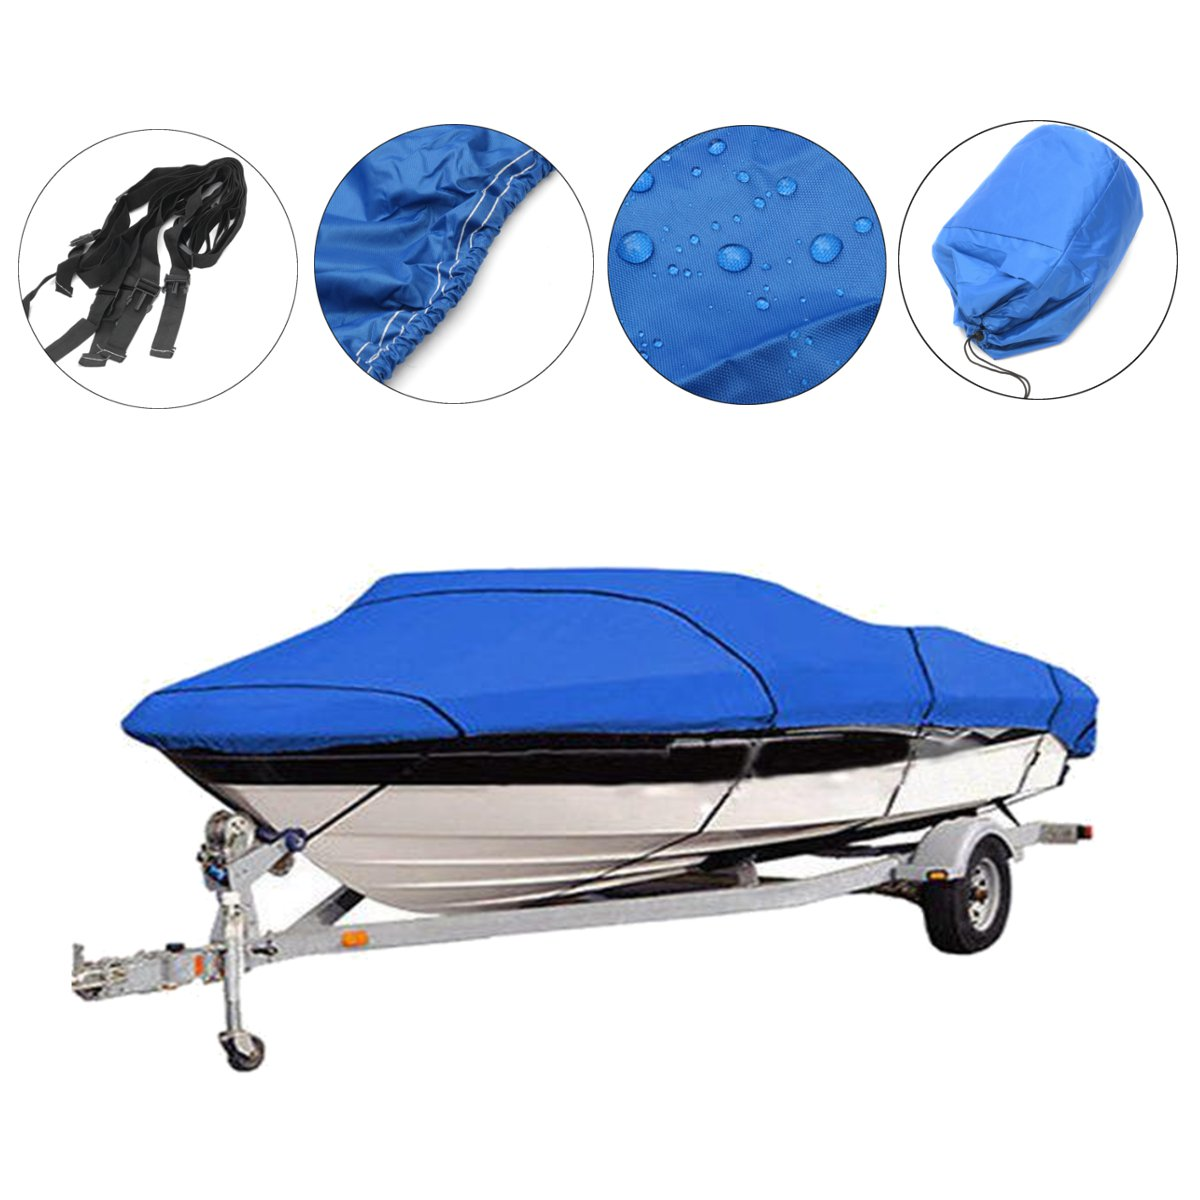 1 Pcs Universal Heavy Duty Fishing Ski Boat Cover For 11-13' 14-16' 17-19' 20-22' V-Hull Waterproof Cover Blue Boat Accessories